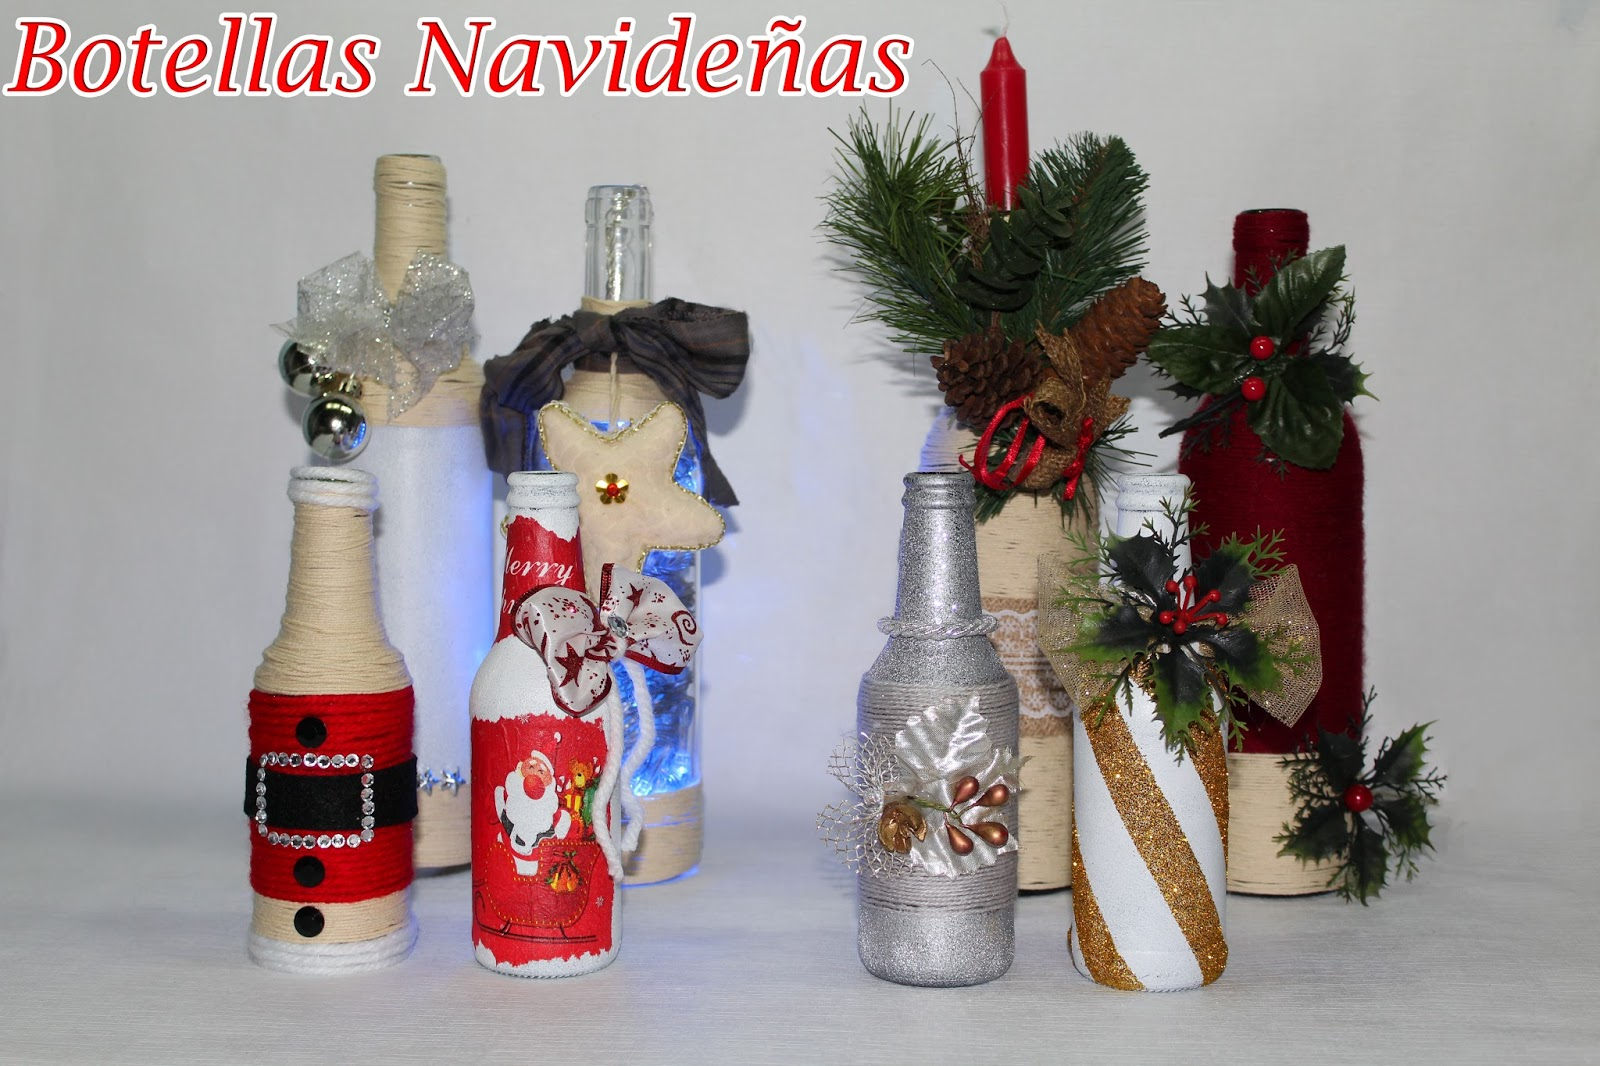 Manualidades herme 8 botellas decoradas navide as for Botellas de vidrio decoradas para navidad